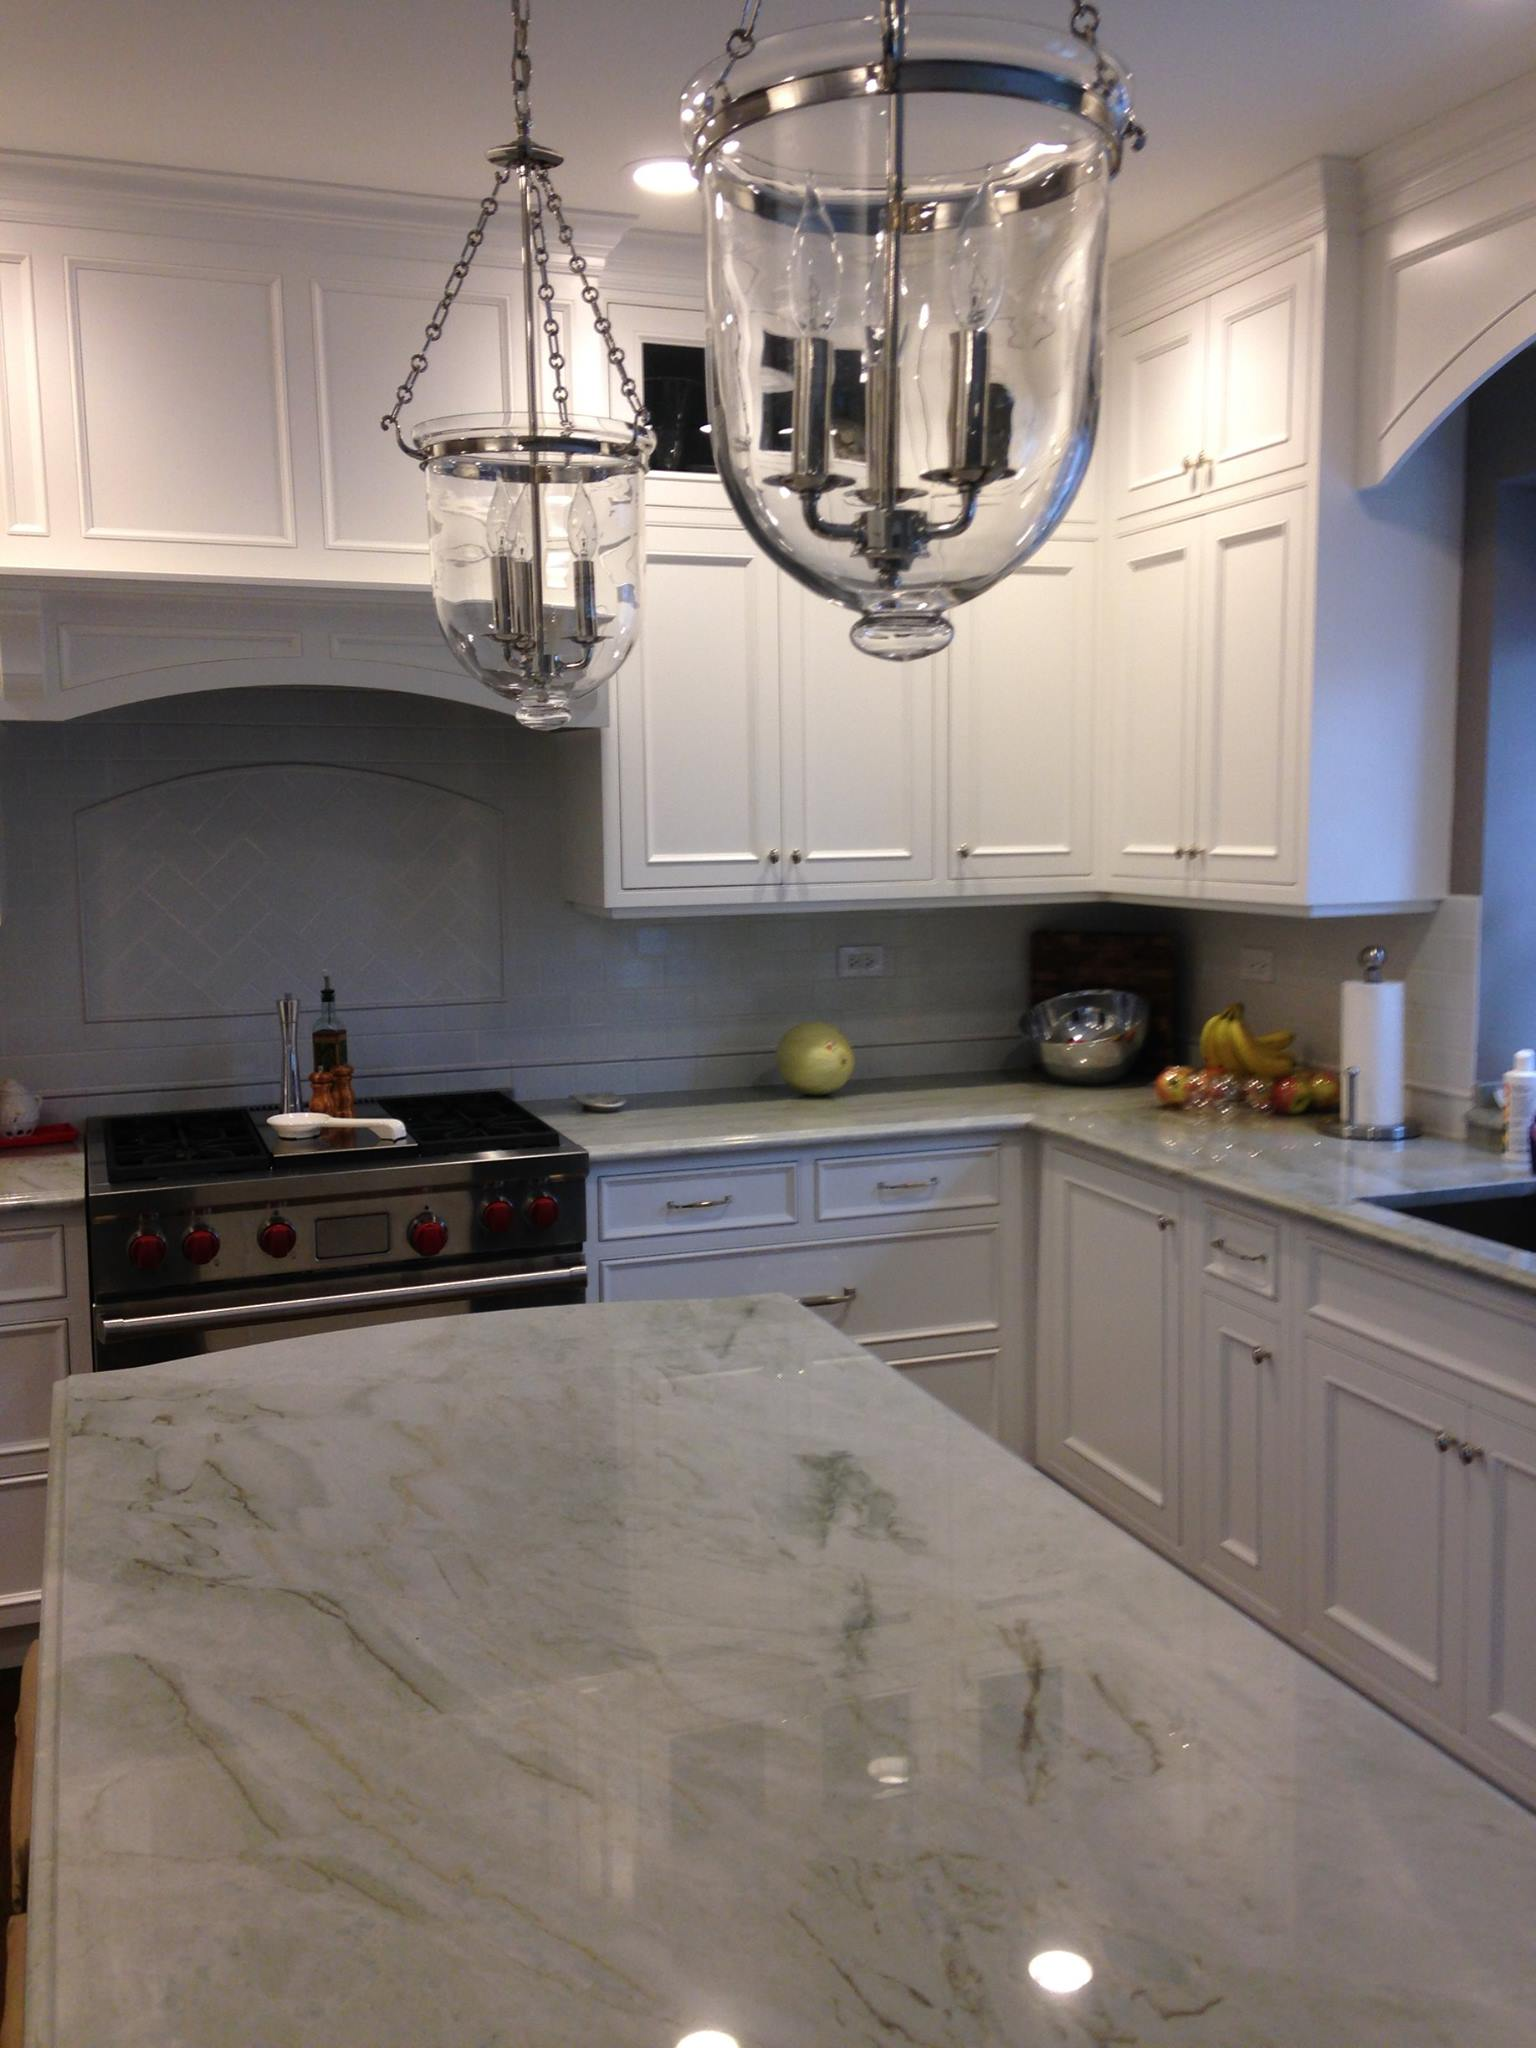 kitchen cabinets com bulk towels sea pearl quartzite counter - stone city & bath design